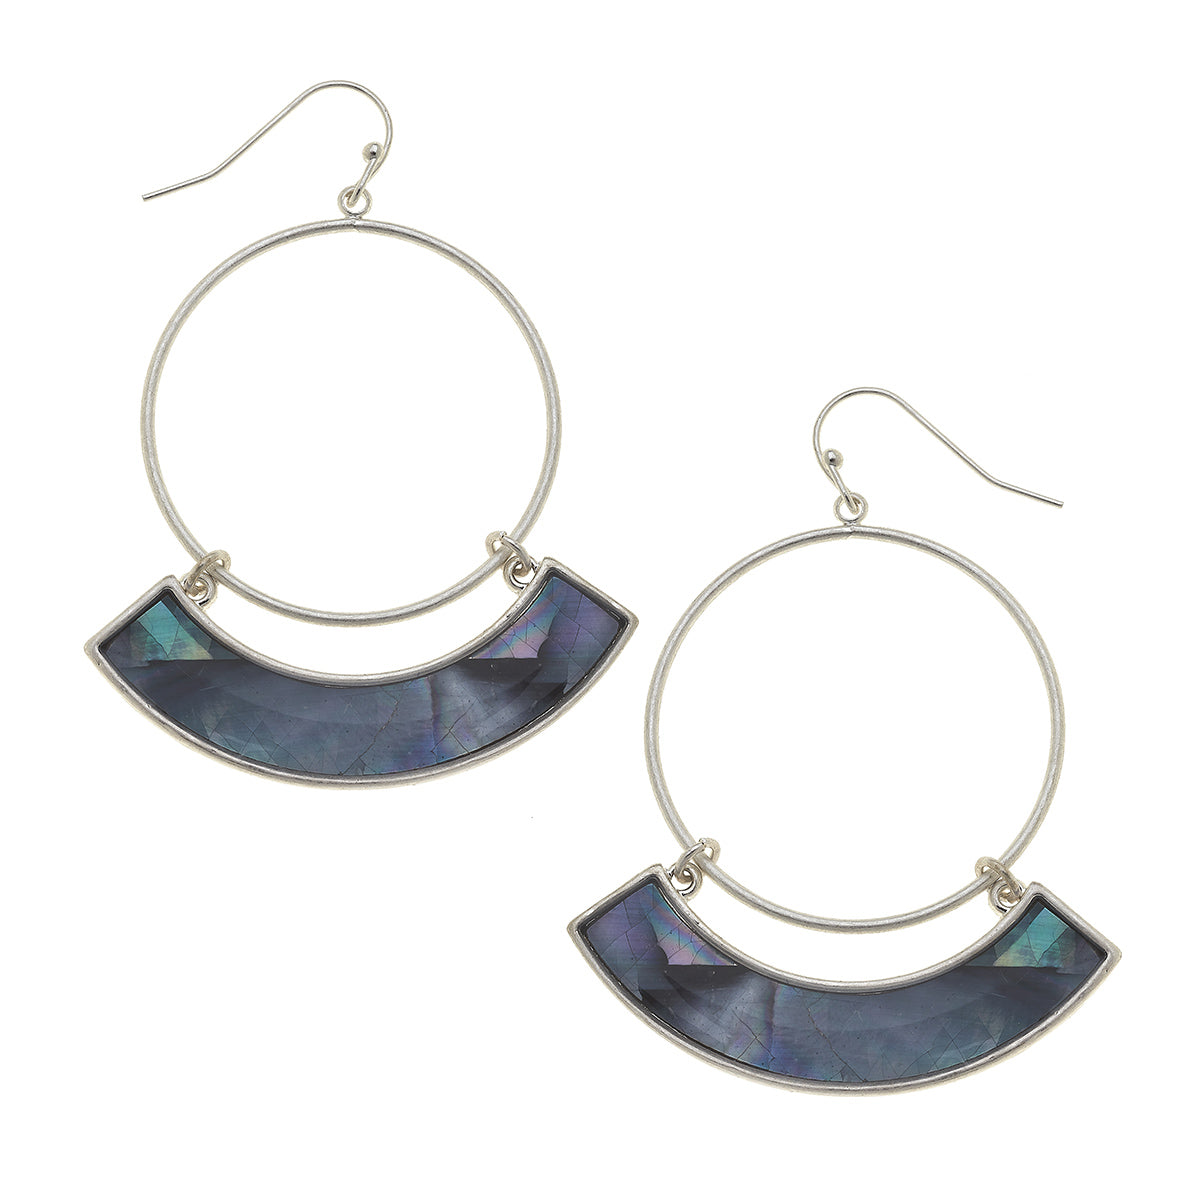 Maeve Hoop Earrings in Grey Mother of Pearl Shell